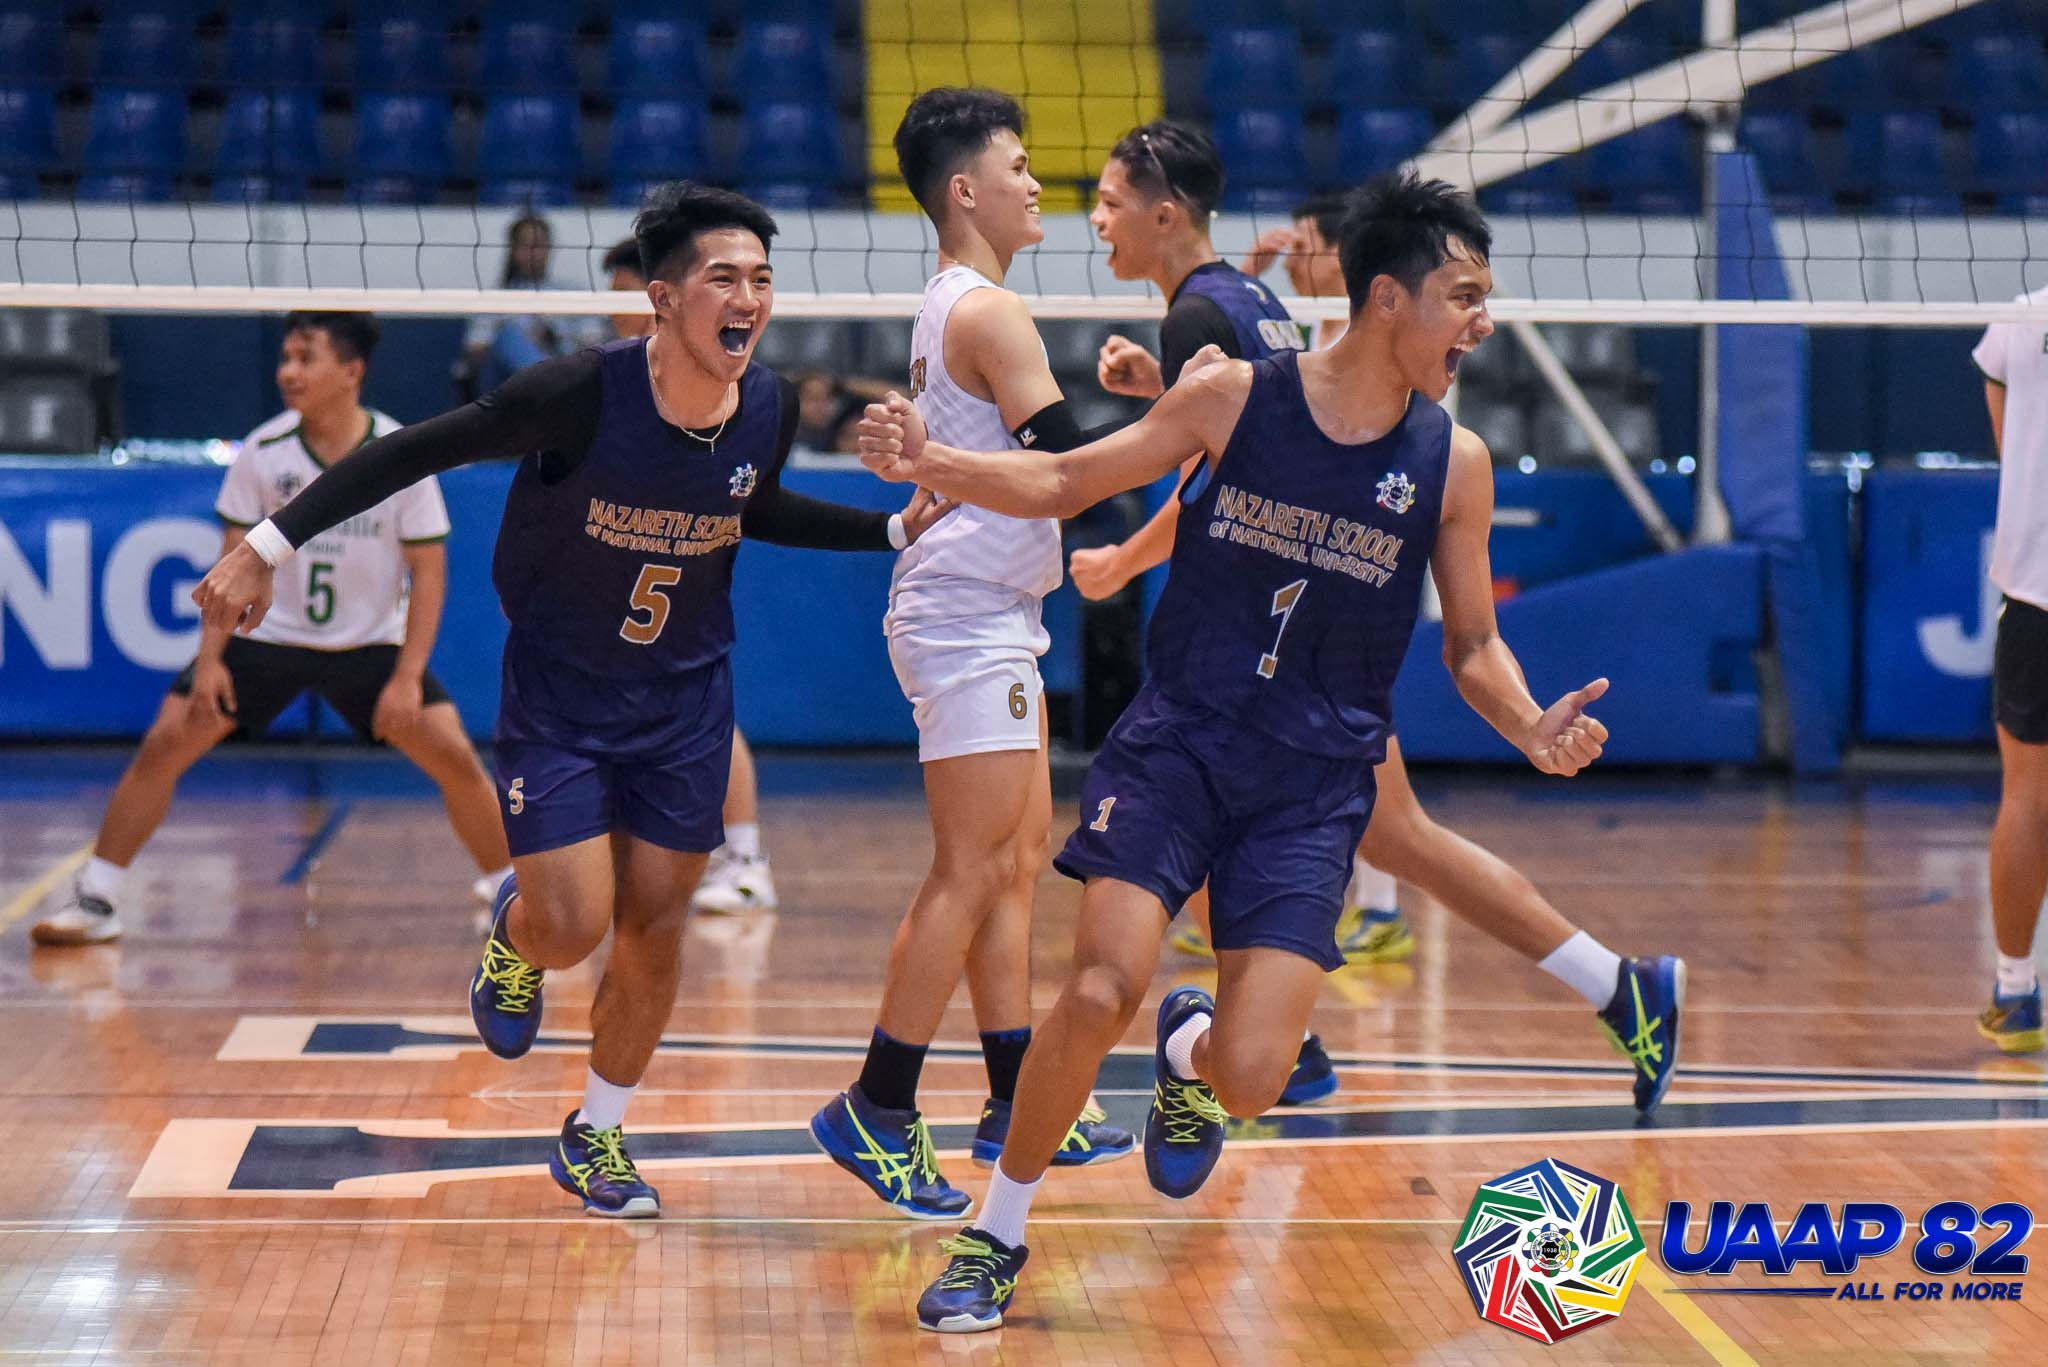 Tiebreaker Times NU Bullpups continue UST woes, rise for share of third ADMU AdU FEU News NU UAAP UE UST Volleyball  UE Boys Volleyball UAAP Season 82 Boys Volleyball UAAP Season 82 Rey De Vega Rans Cajolo Paul Colinares nathaniel del pilar Michael Fortuna leo ordiales Joshua Espenida John Paul Mangahis Jerold Talisayan Jay Rack Dela Noche Francis Babon FEU Boys Volleyball Evander Novillo Ateneo Boys Volleyball Arvin Bandola Angelo Lipata Adamson Boys Volleyball